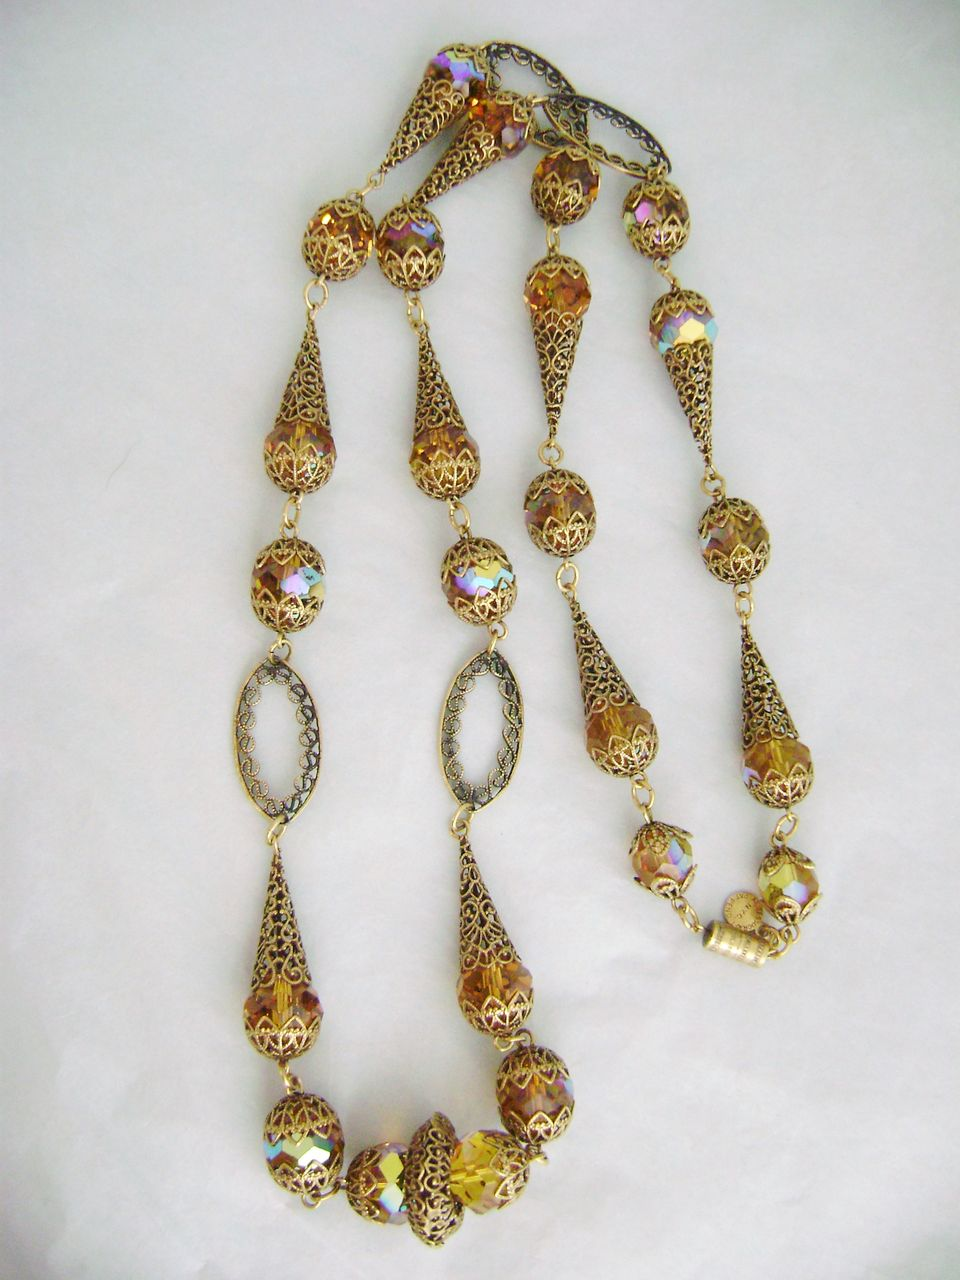 Vintage Exquisite ACCESSOCRAFT Crystal & Filigree Cones Necklace